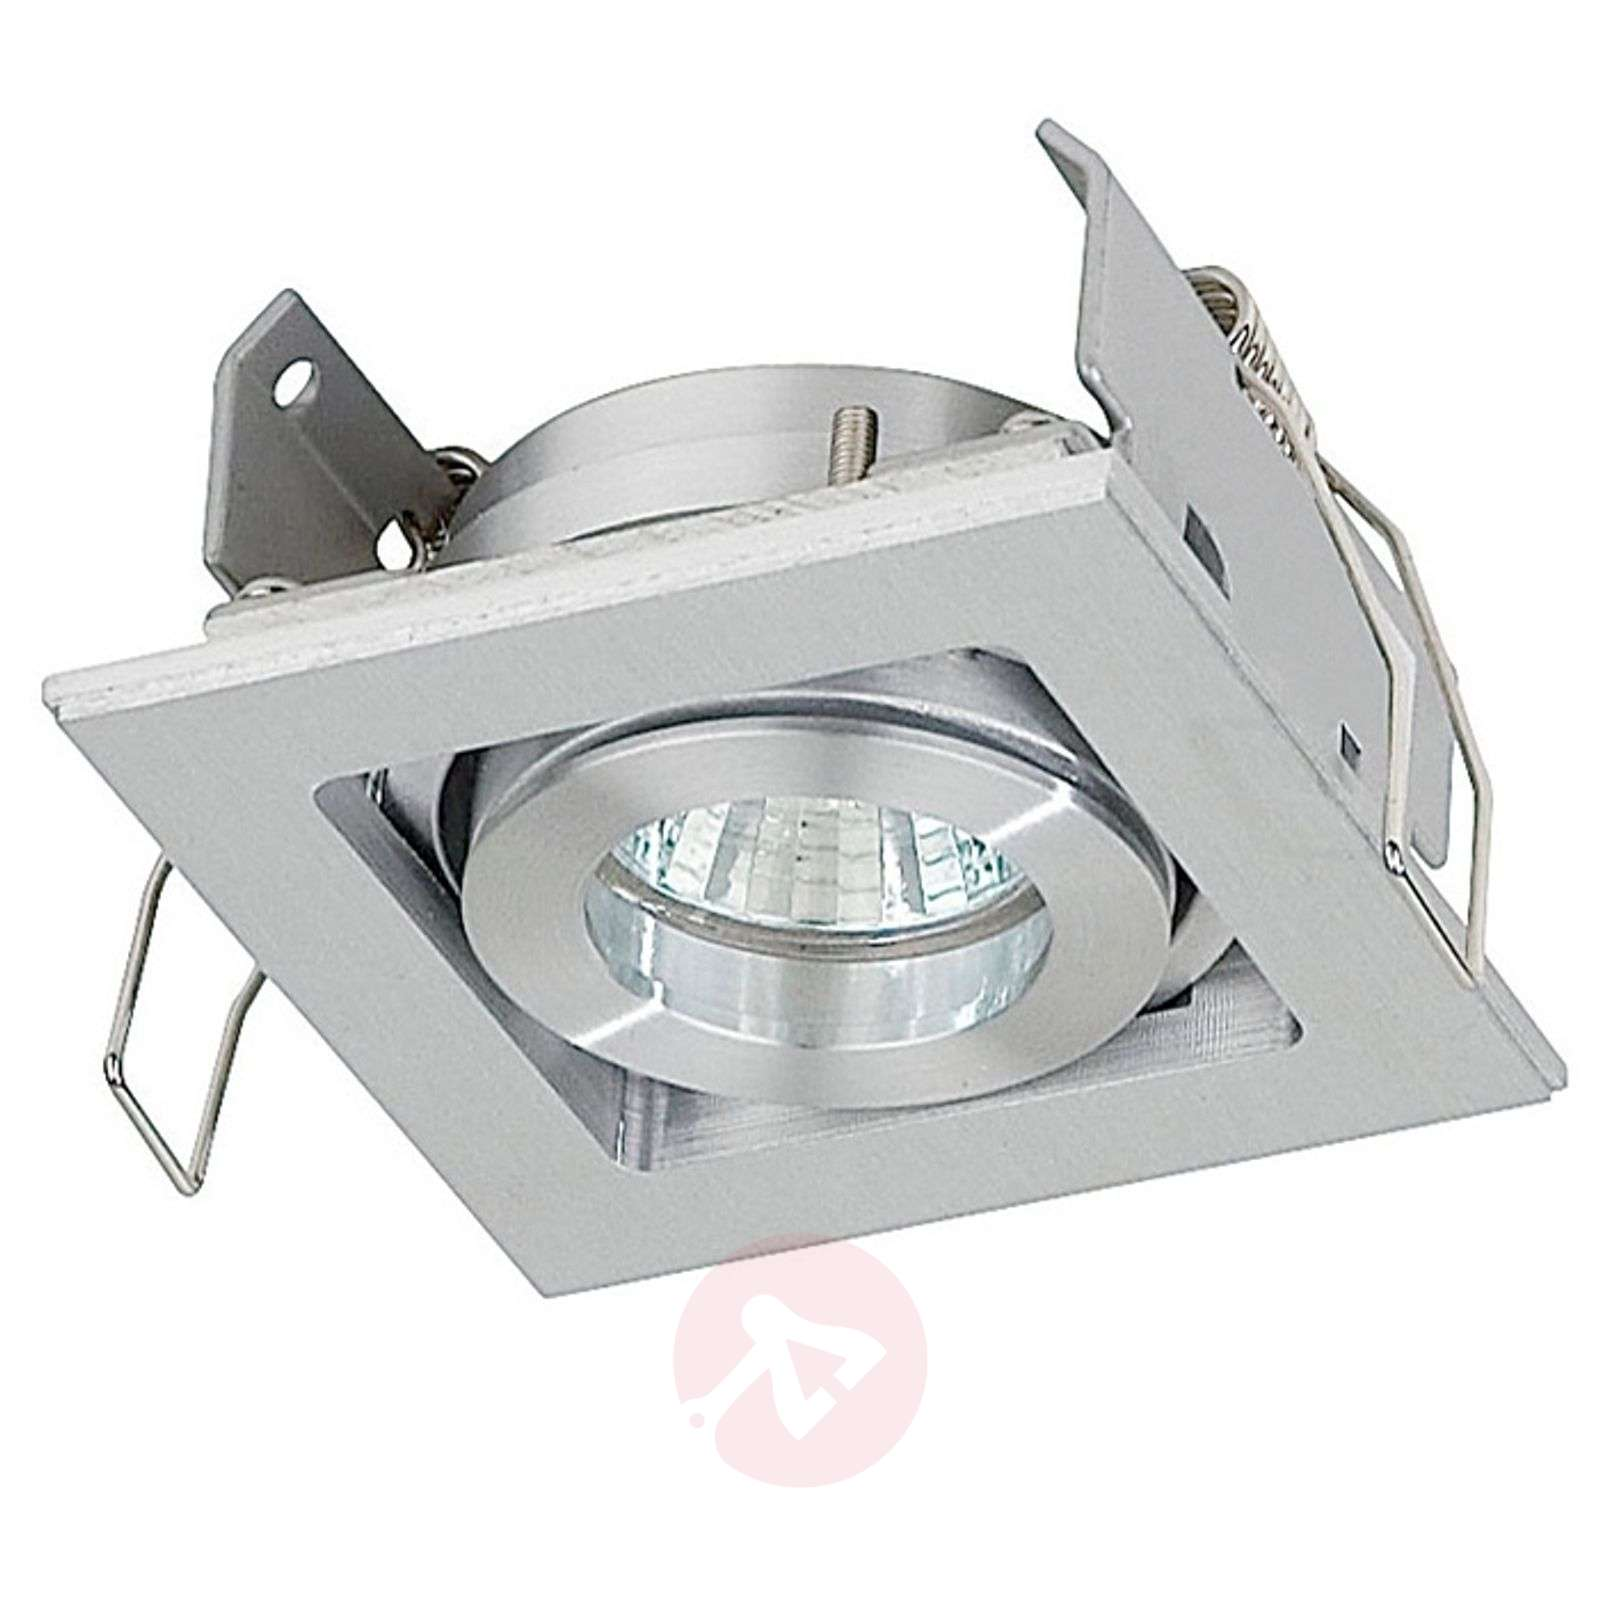 Low voltage recessed light liverpool lights low voltage recessed light liverpool one bulb 1030032 01 aloadofball